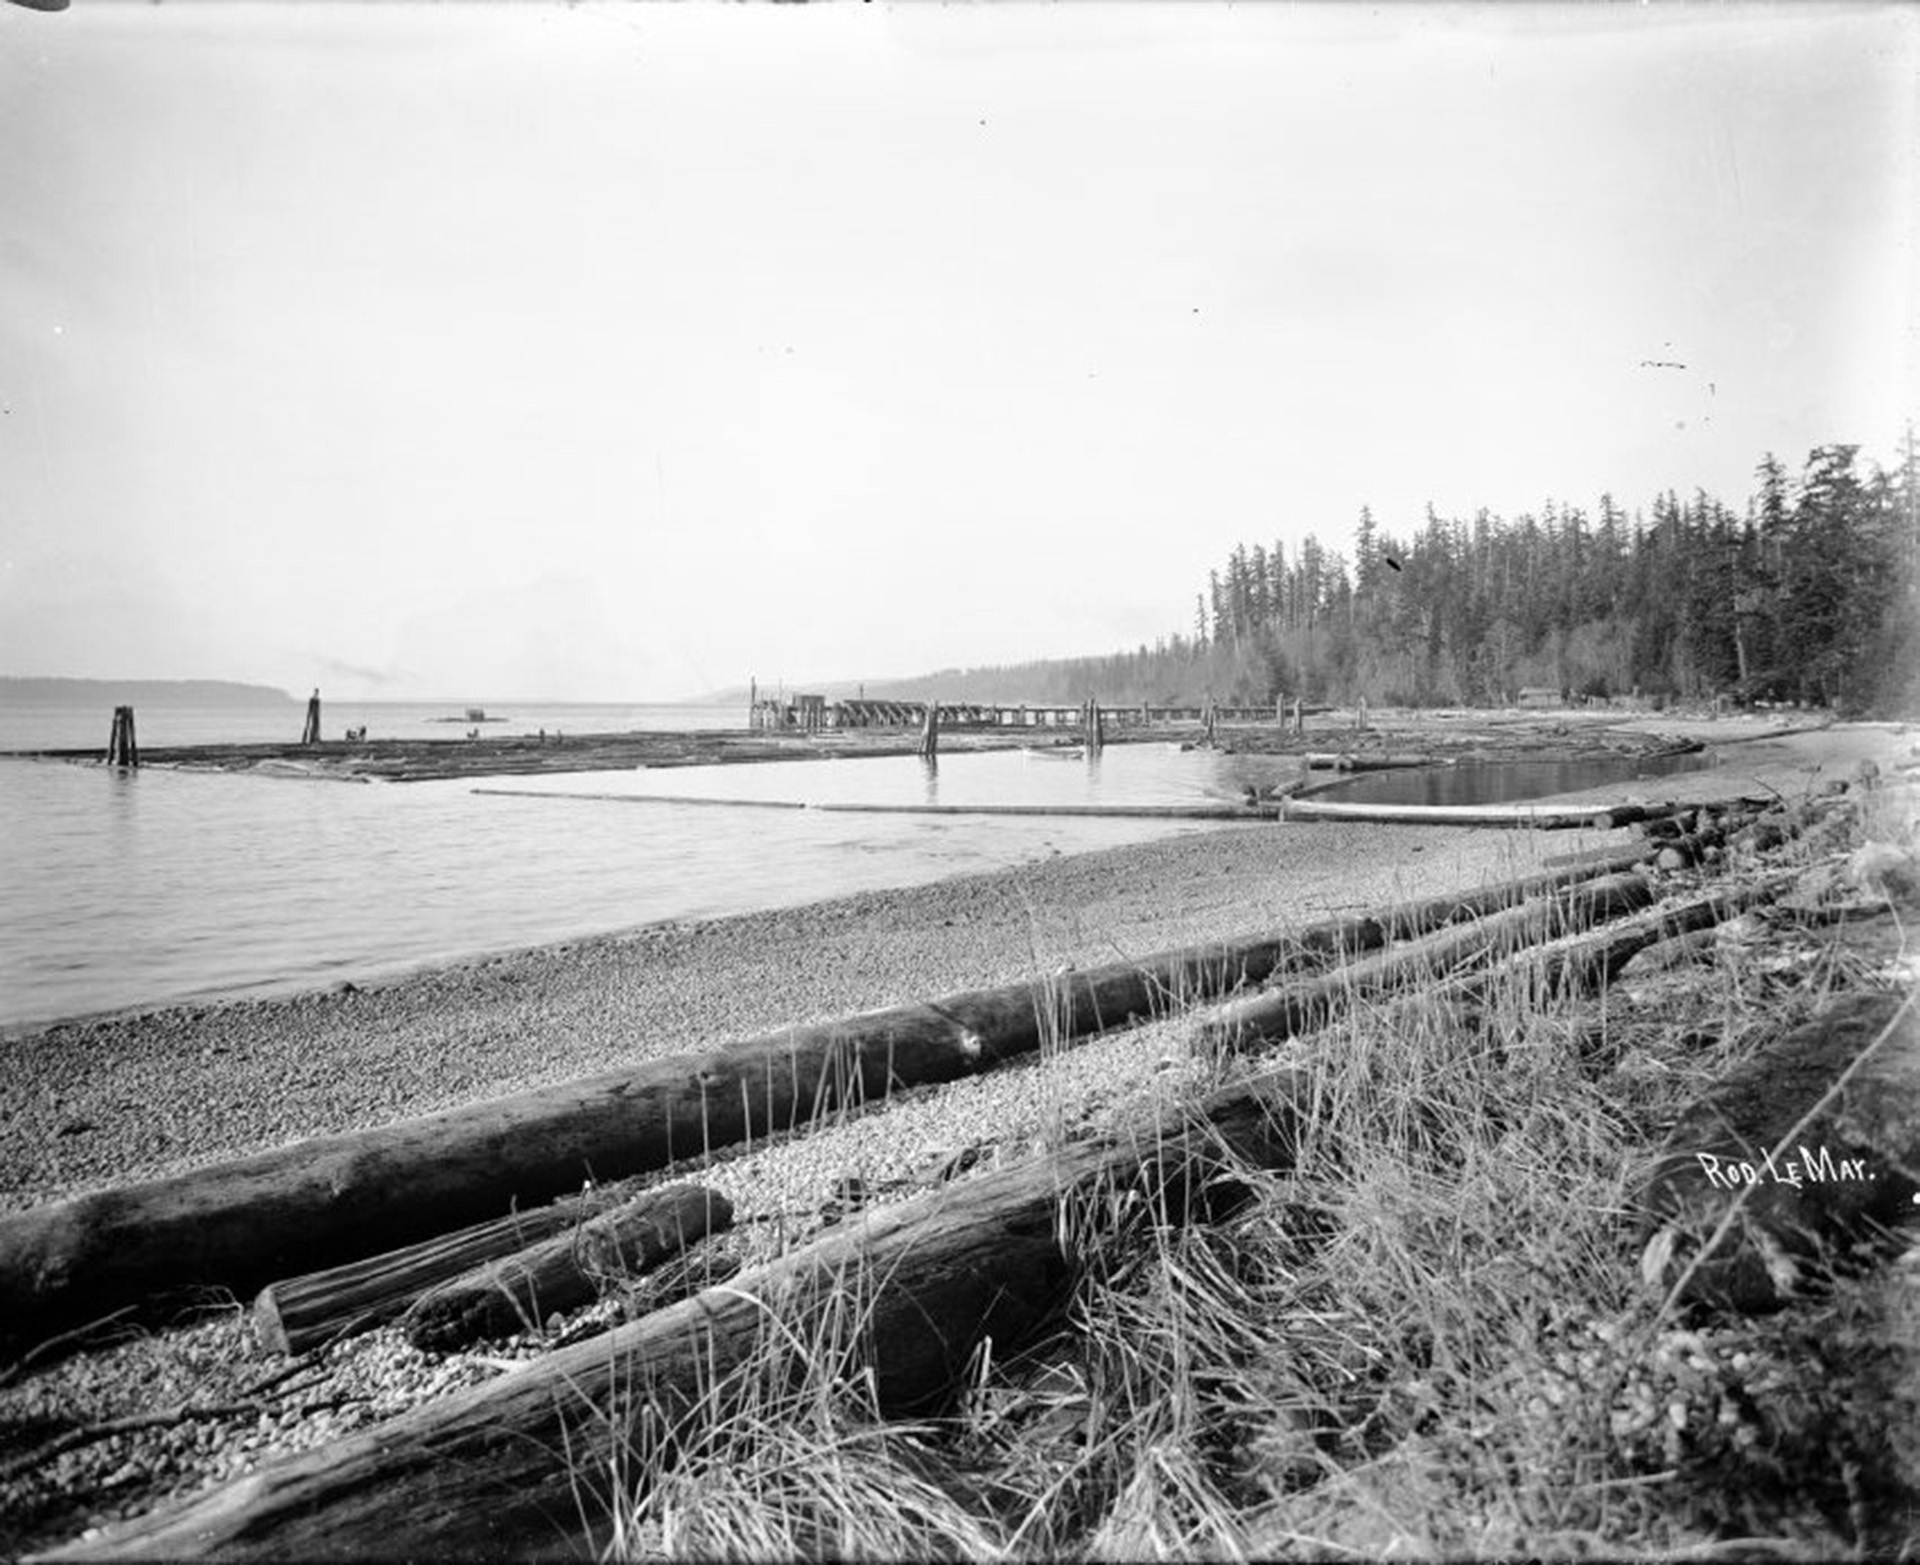 Michigan Landing (now Willingdon Beach) looking north to log dump. 1917.